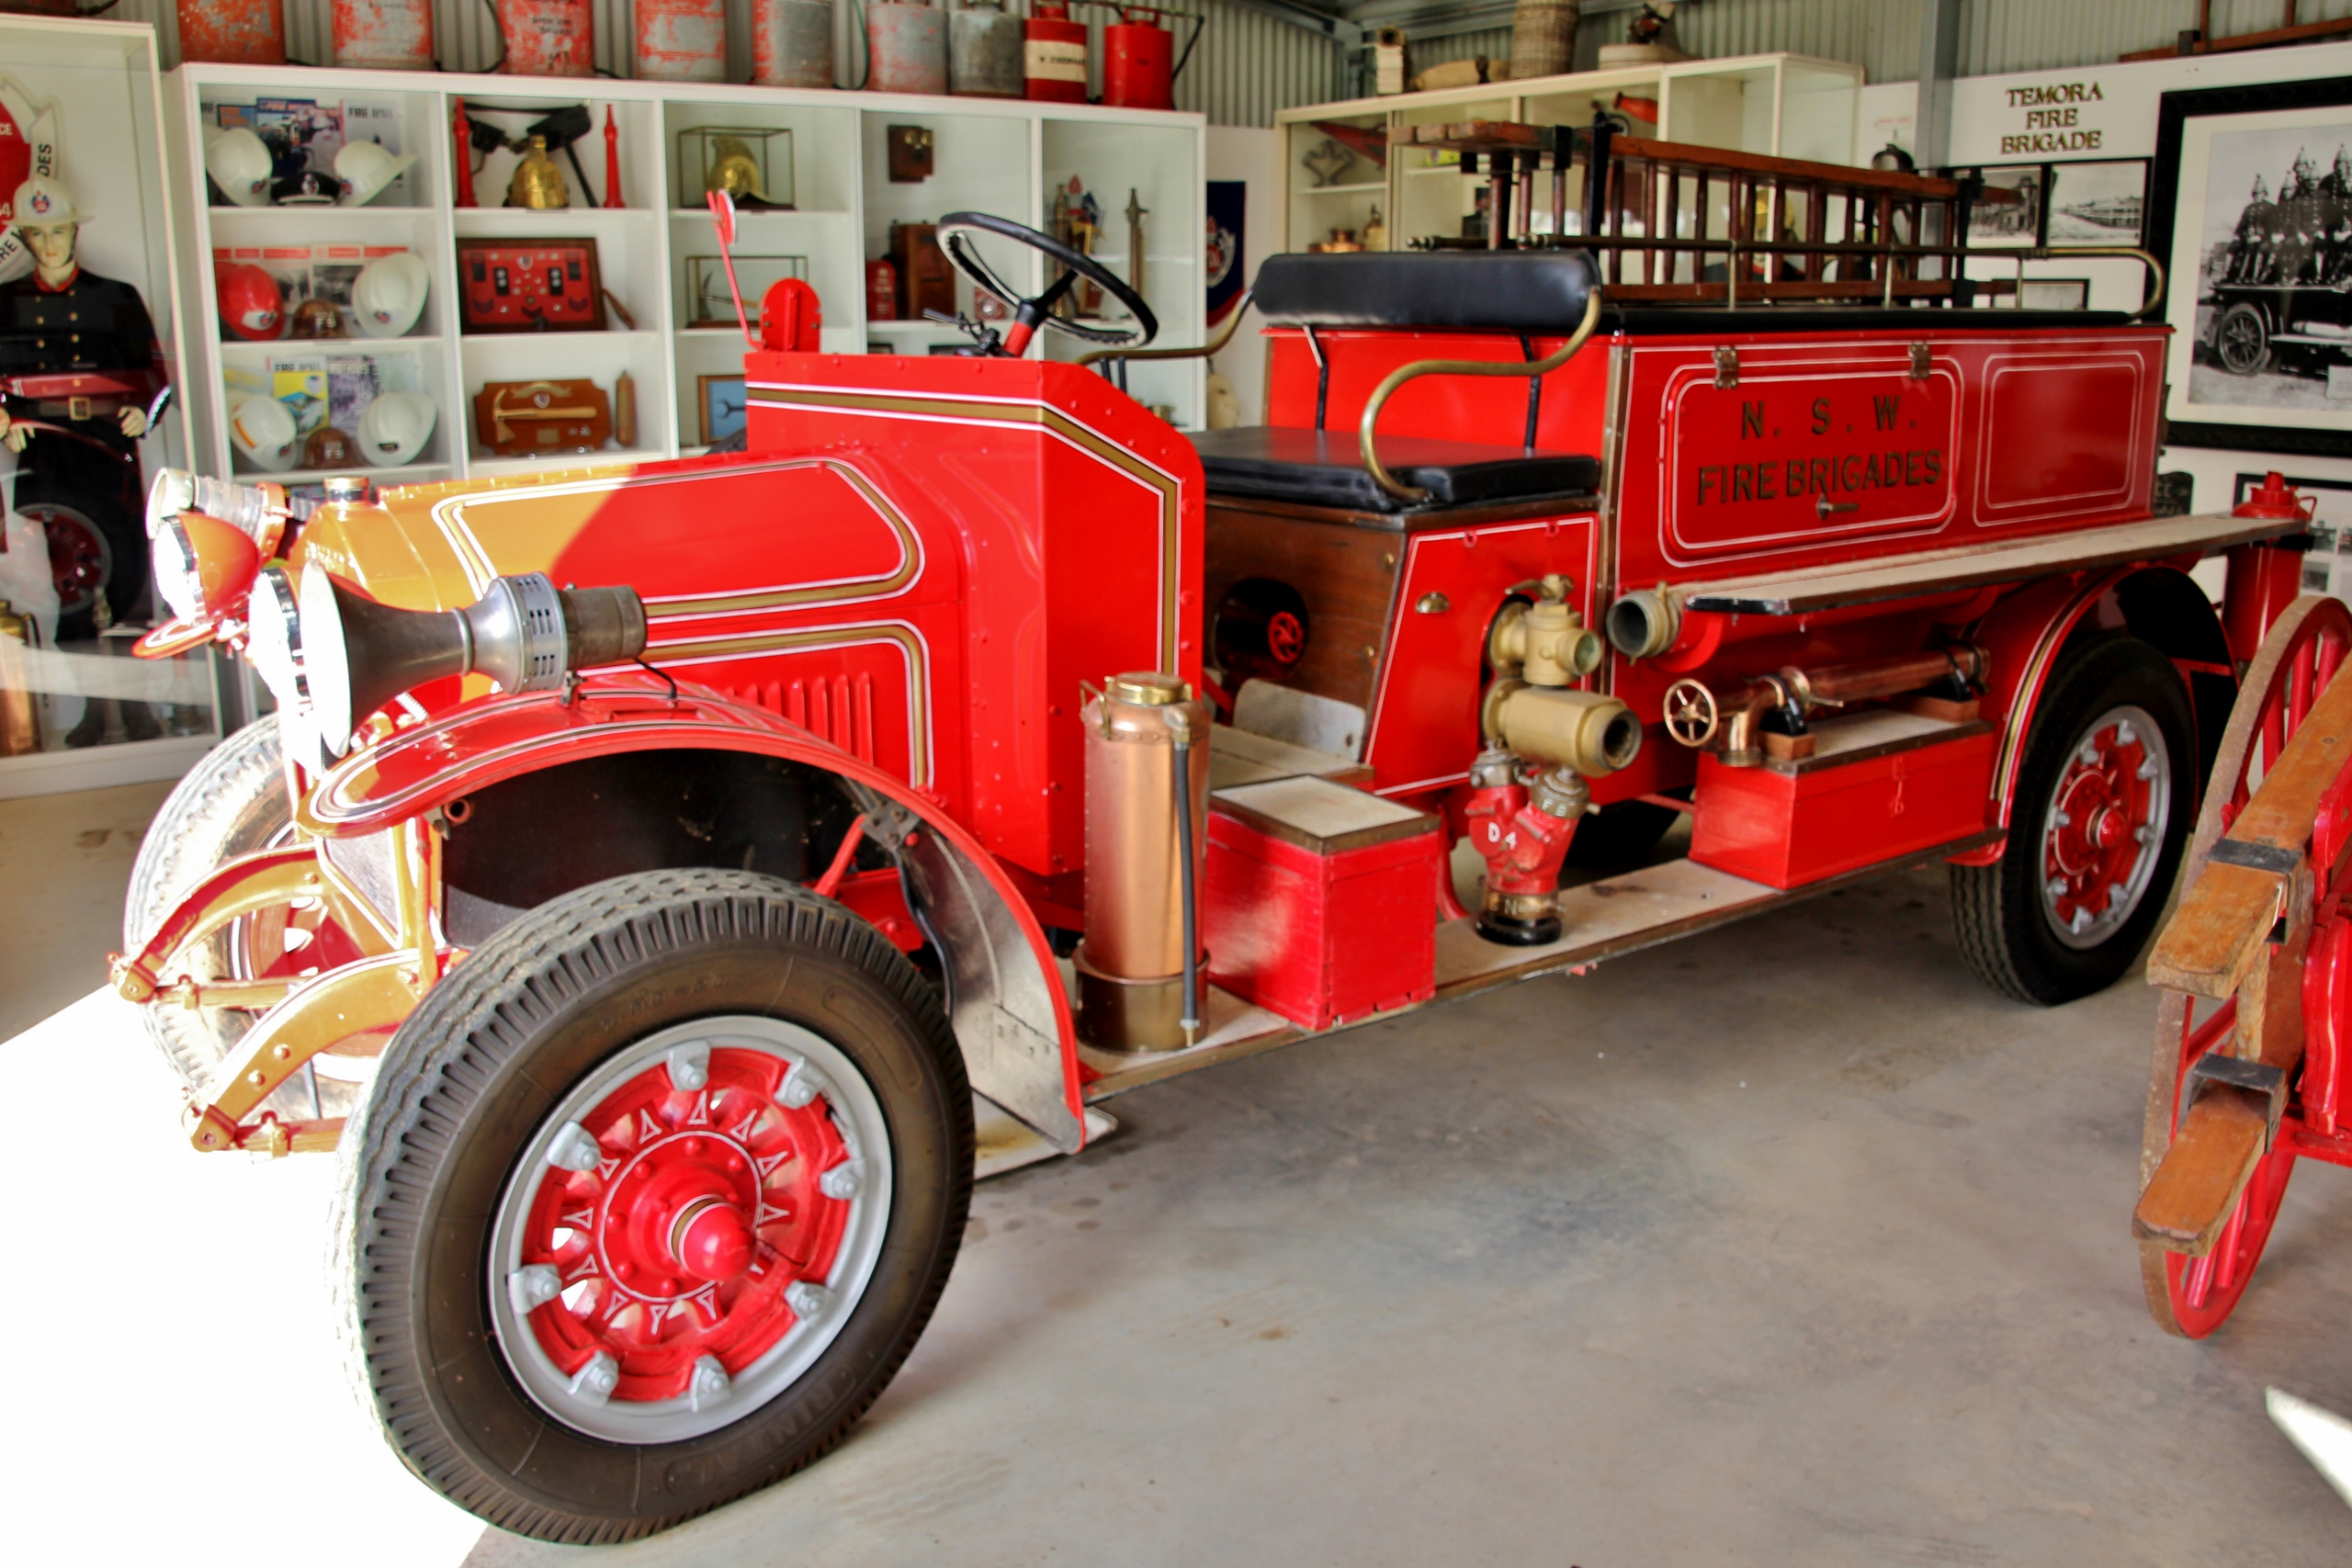 1923 Garford Pumper Fire Truck